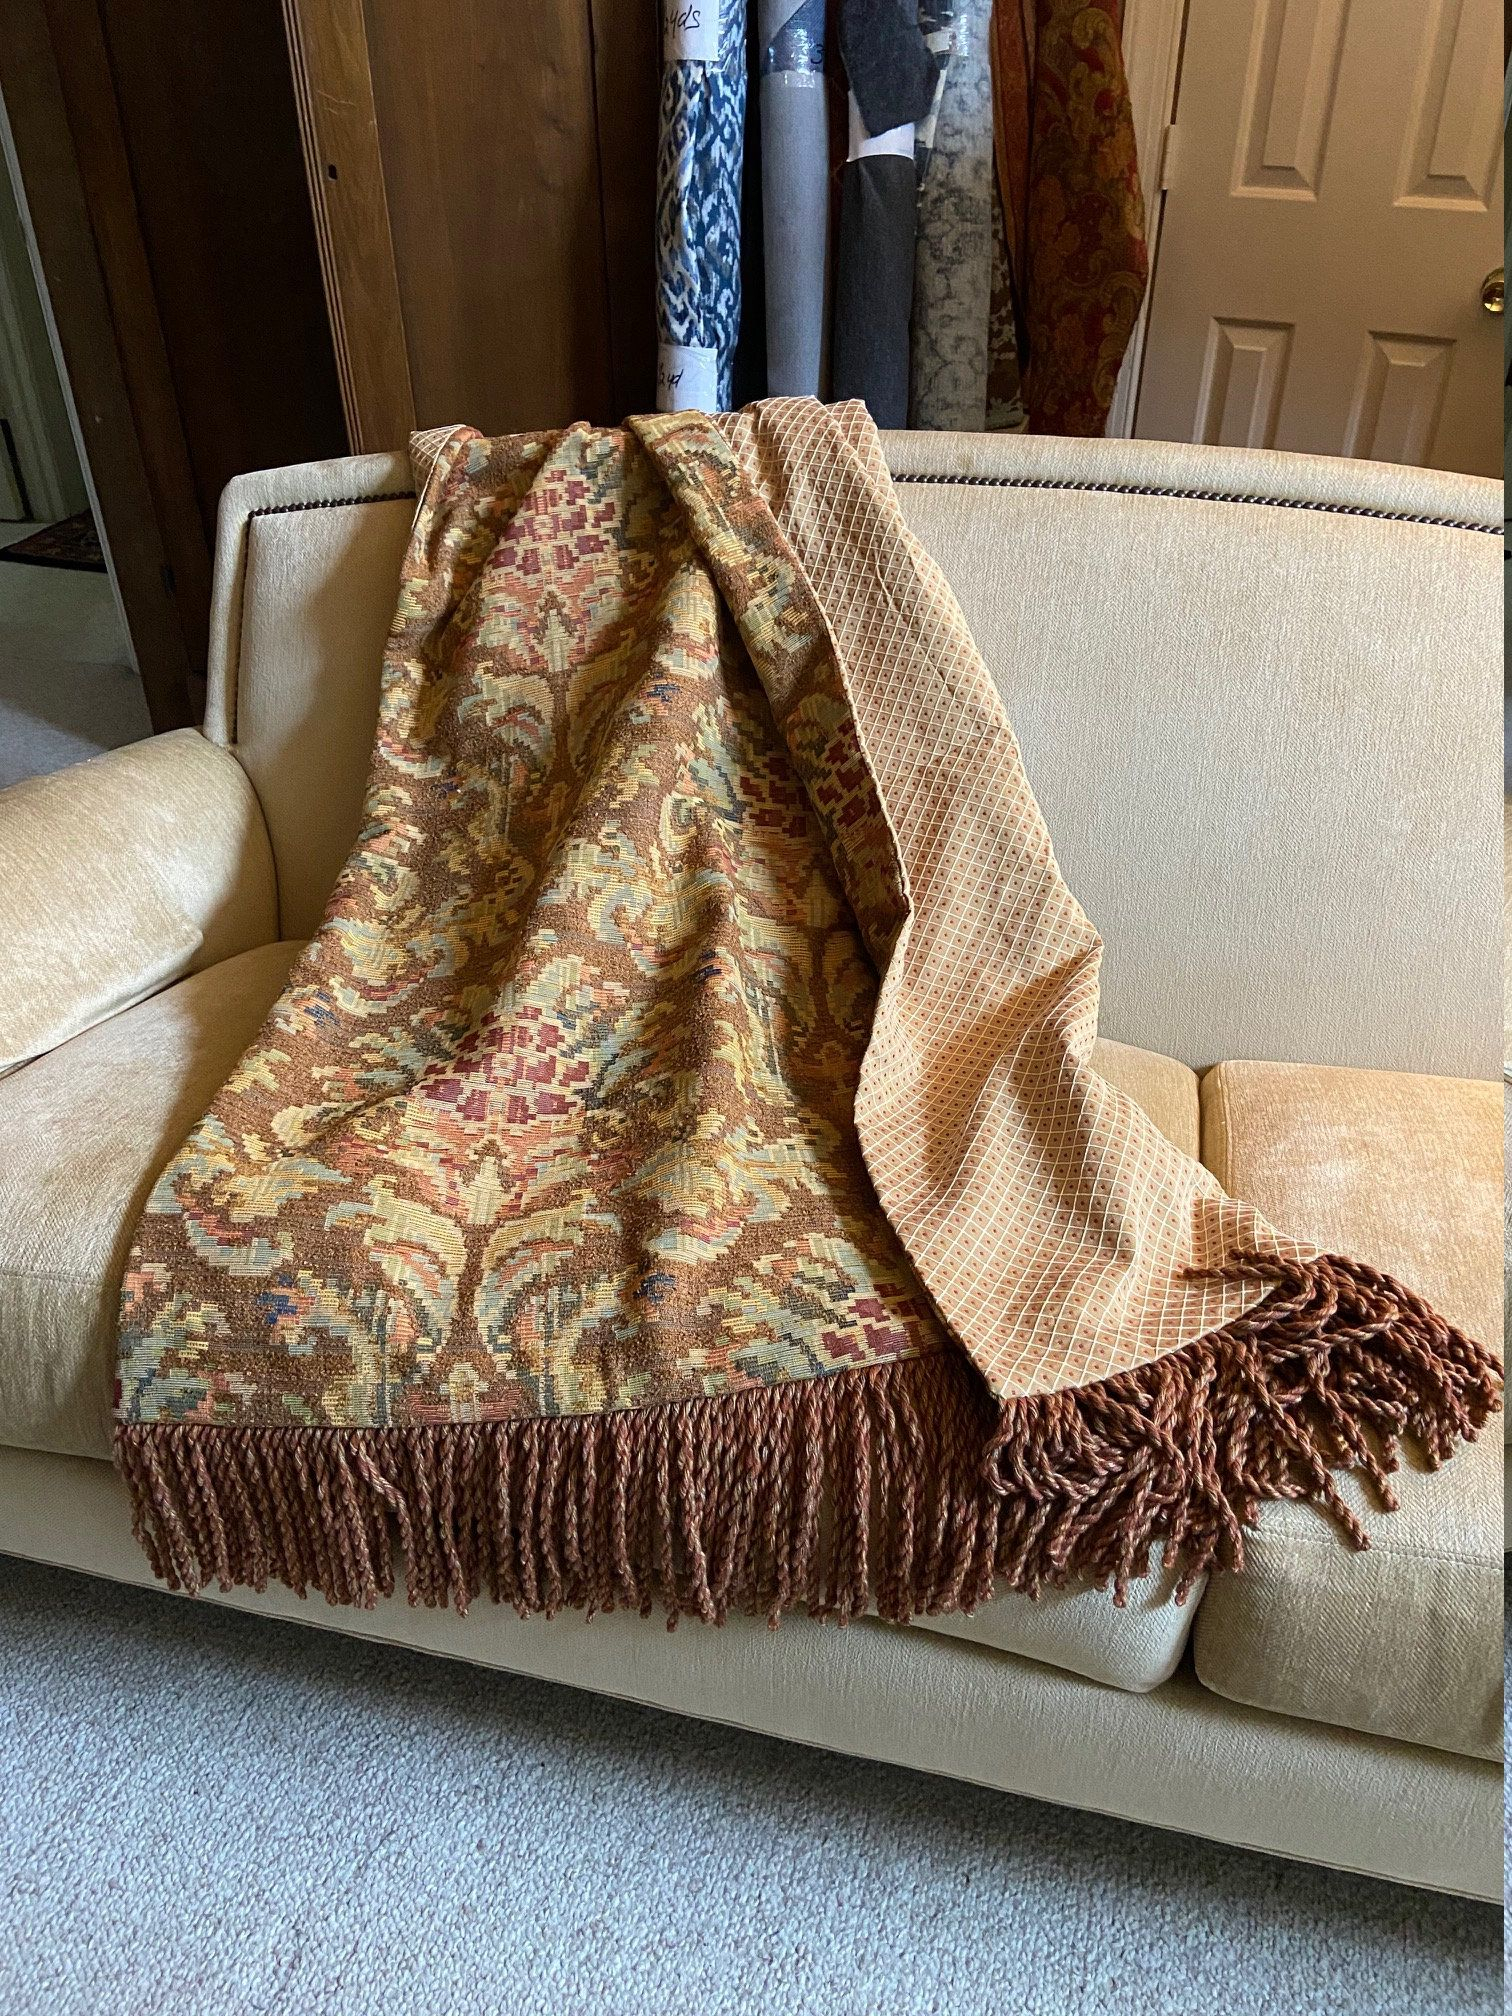 Antique Gold Medieval Throw Blanket Wall Hanging Luxurious Inside Most Recently Released Blended Fabric Peacock European Tapestries (View 15 of 20)